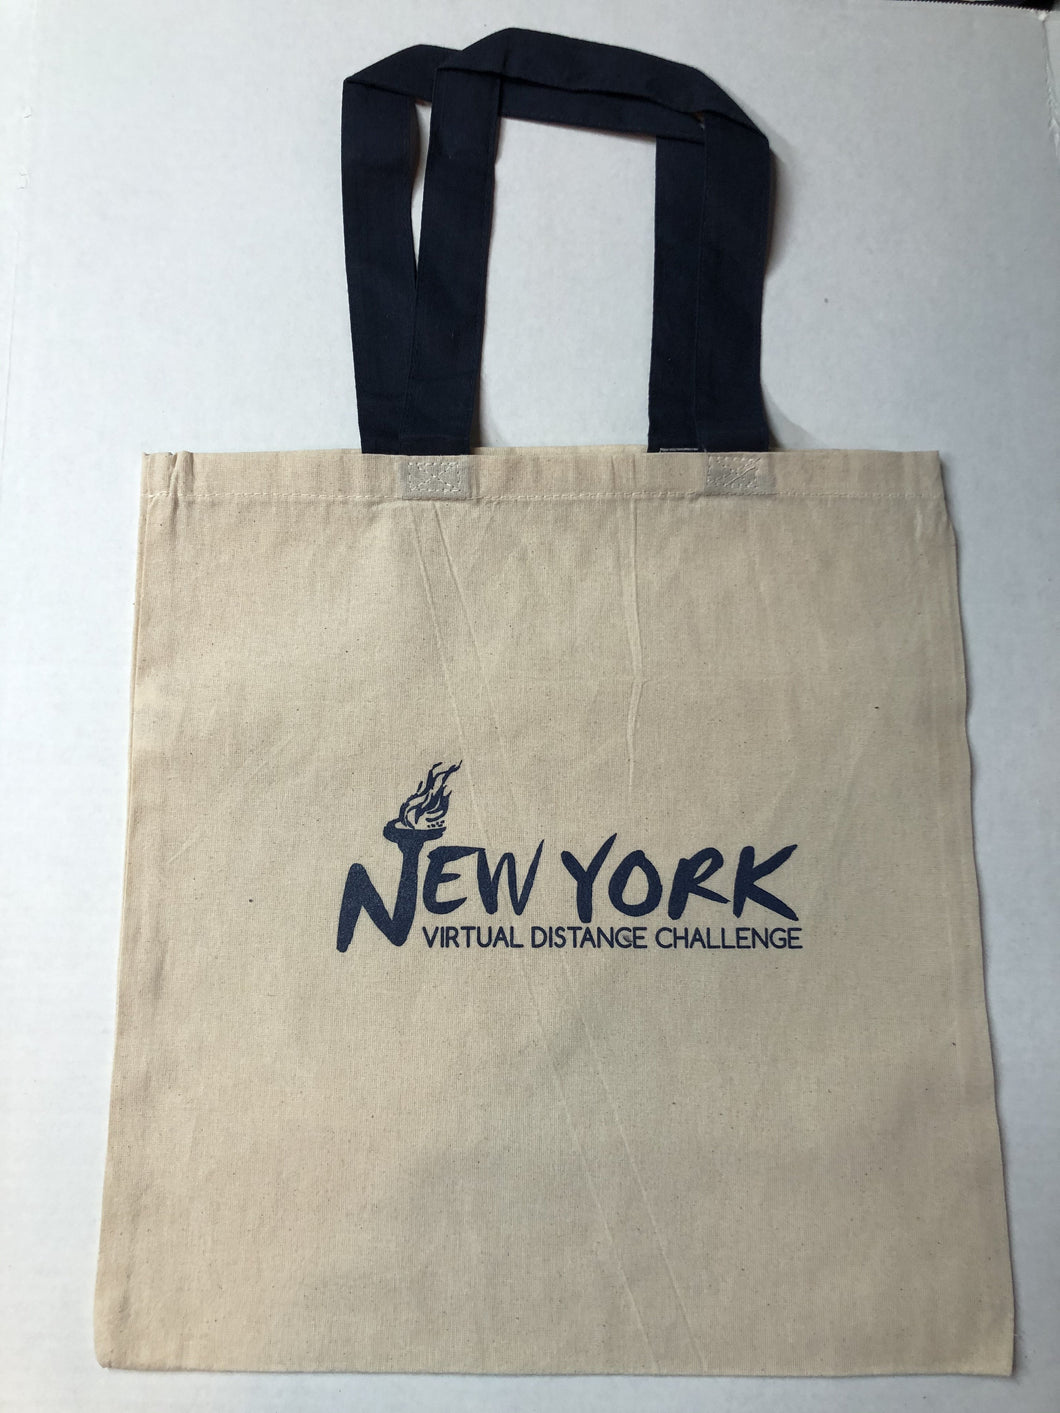 New York Virtual Distance Challenge - Tote Bag